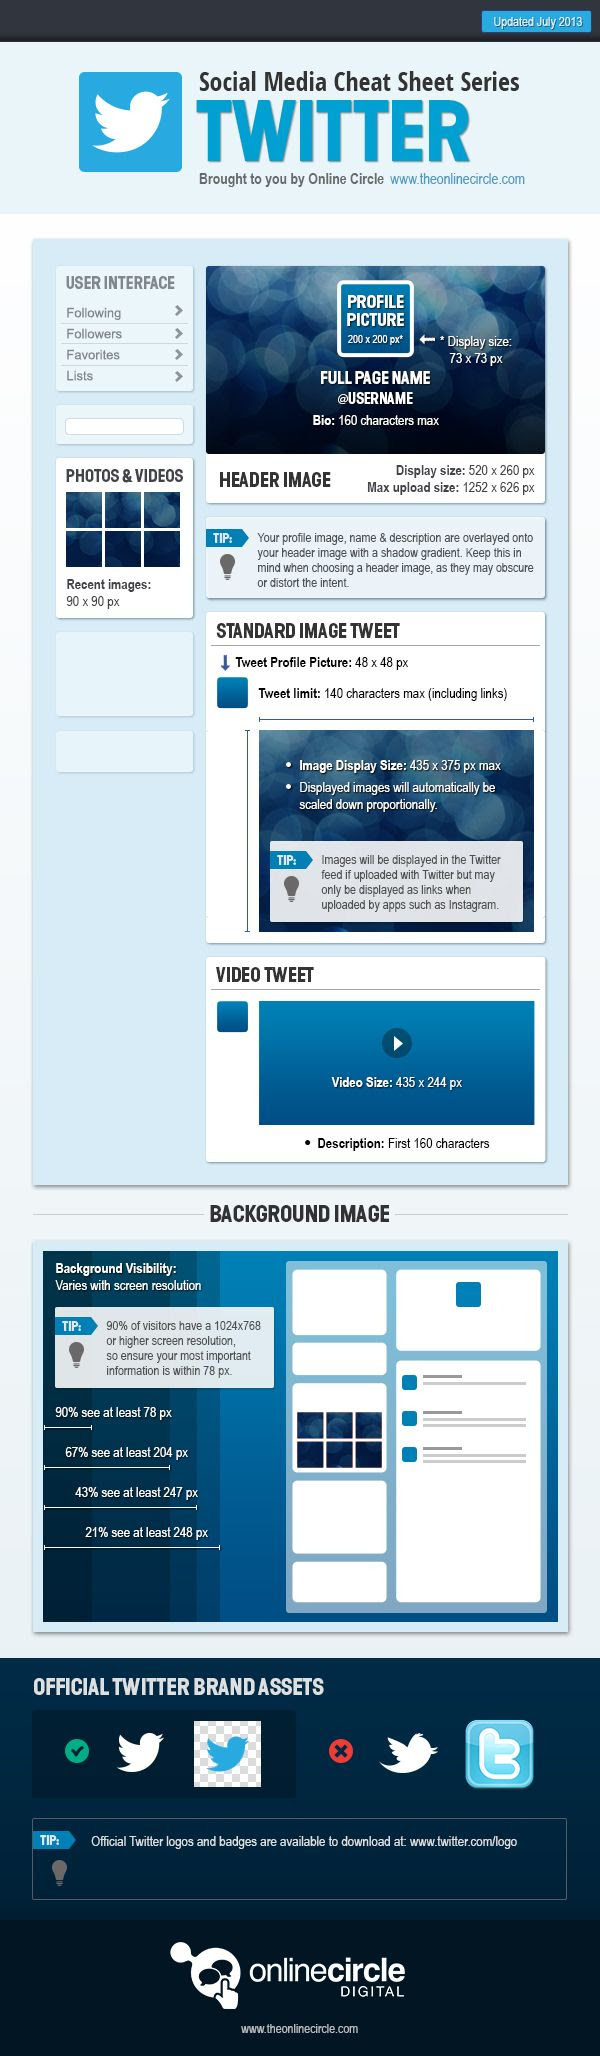 Twitter Cheat Sheet: Profile I